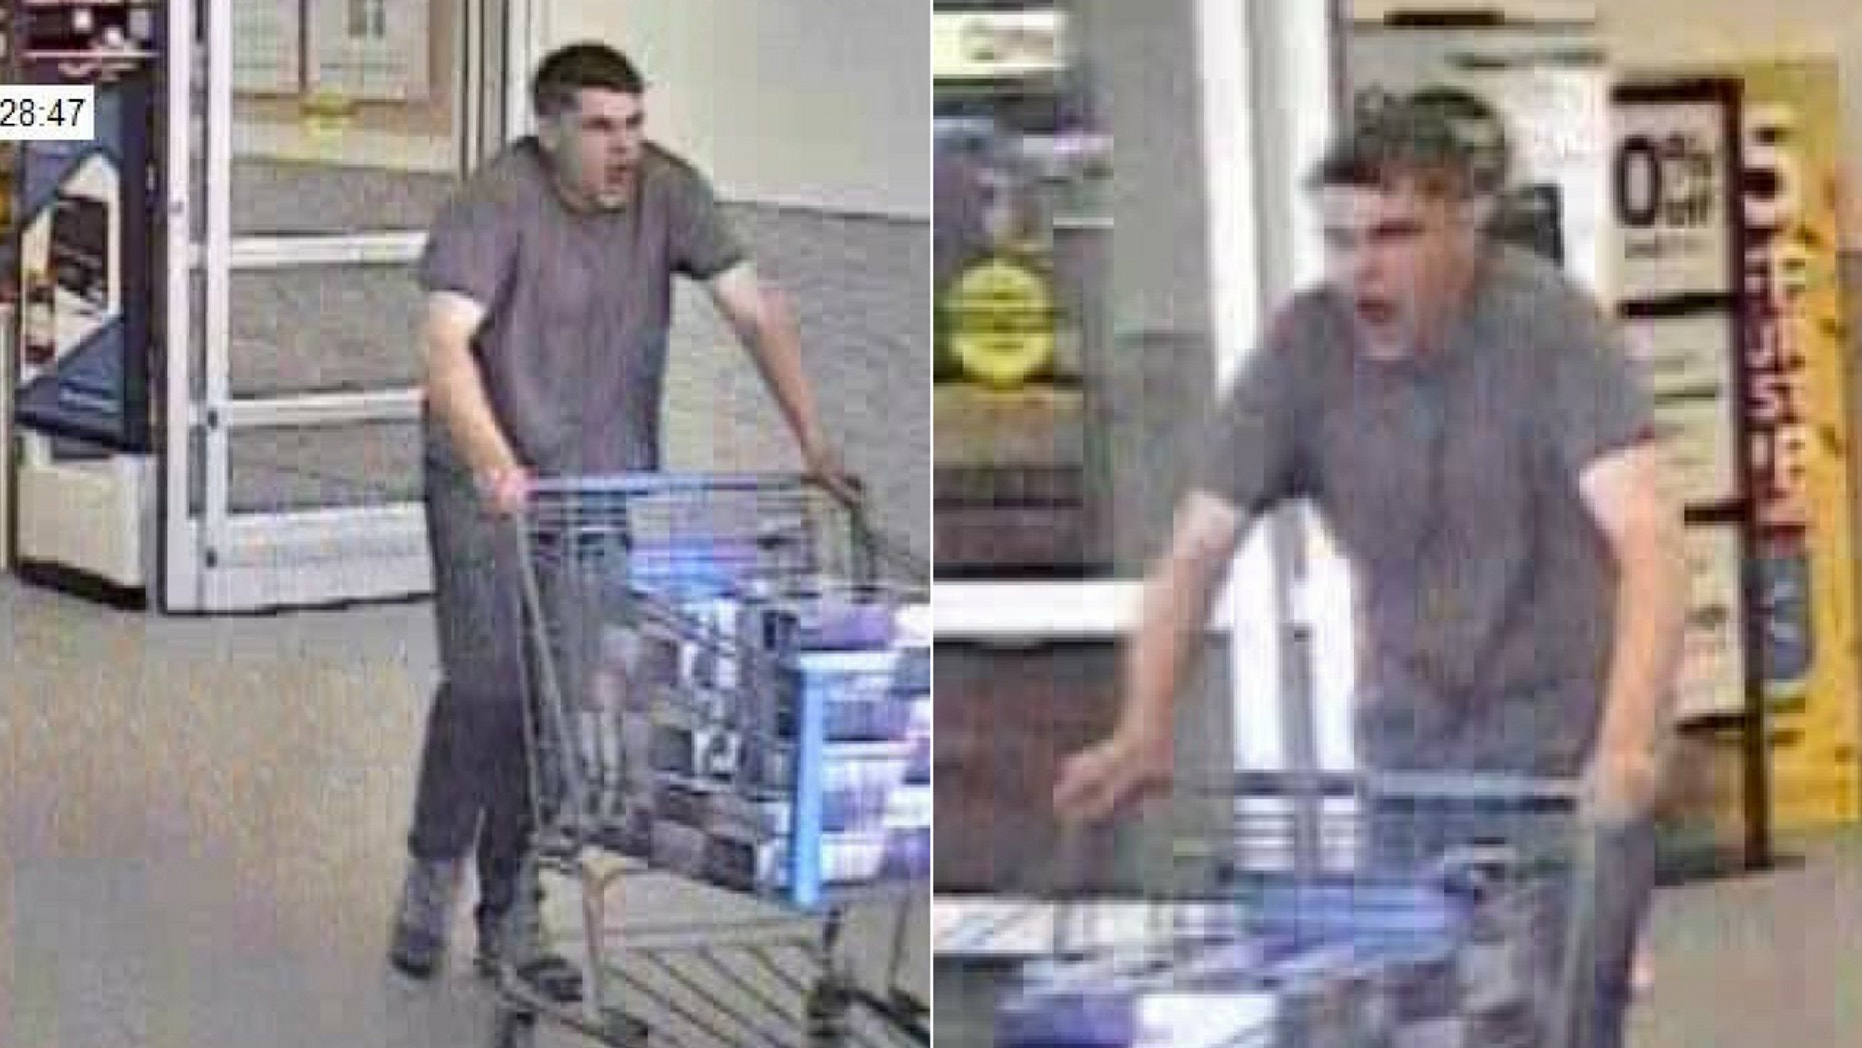 The yawning thief was spotted stealing Red Bull worth nearly $250.